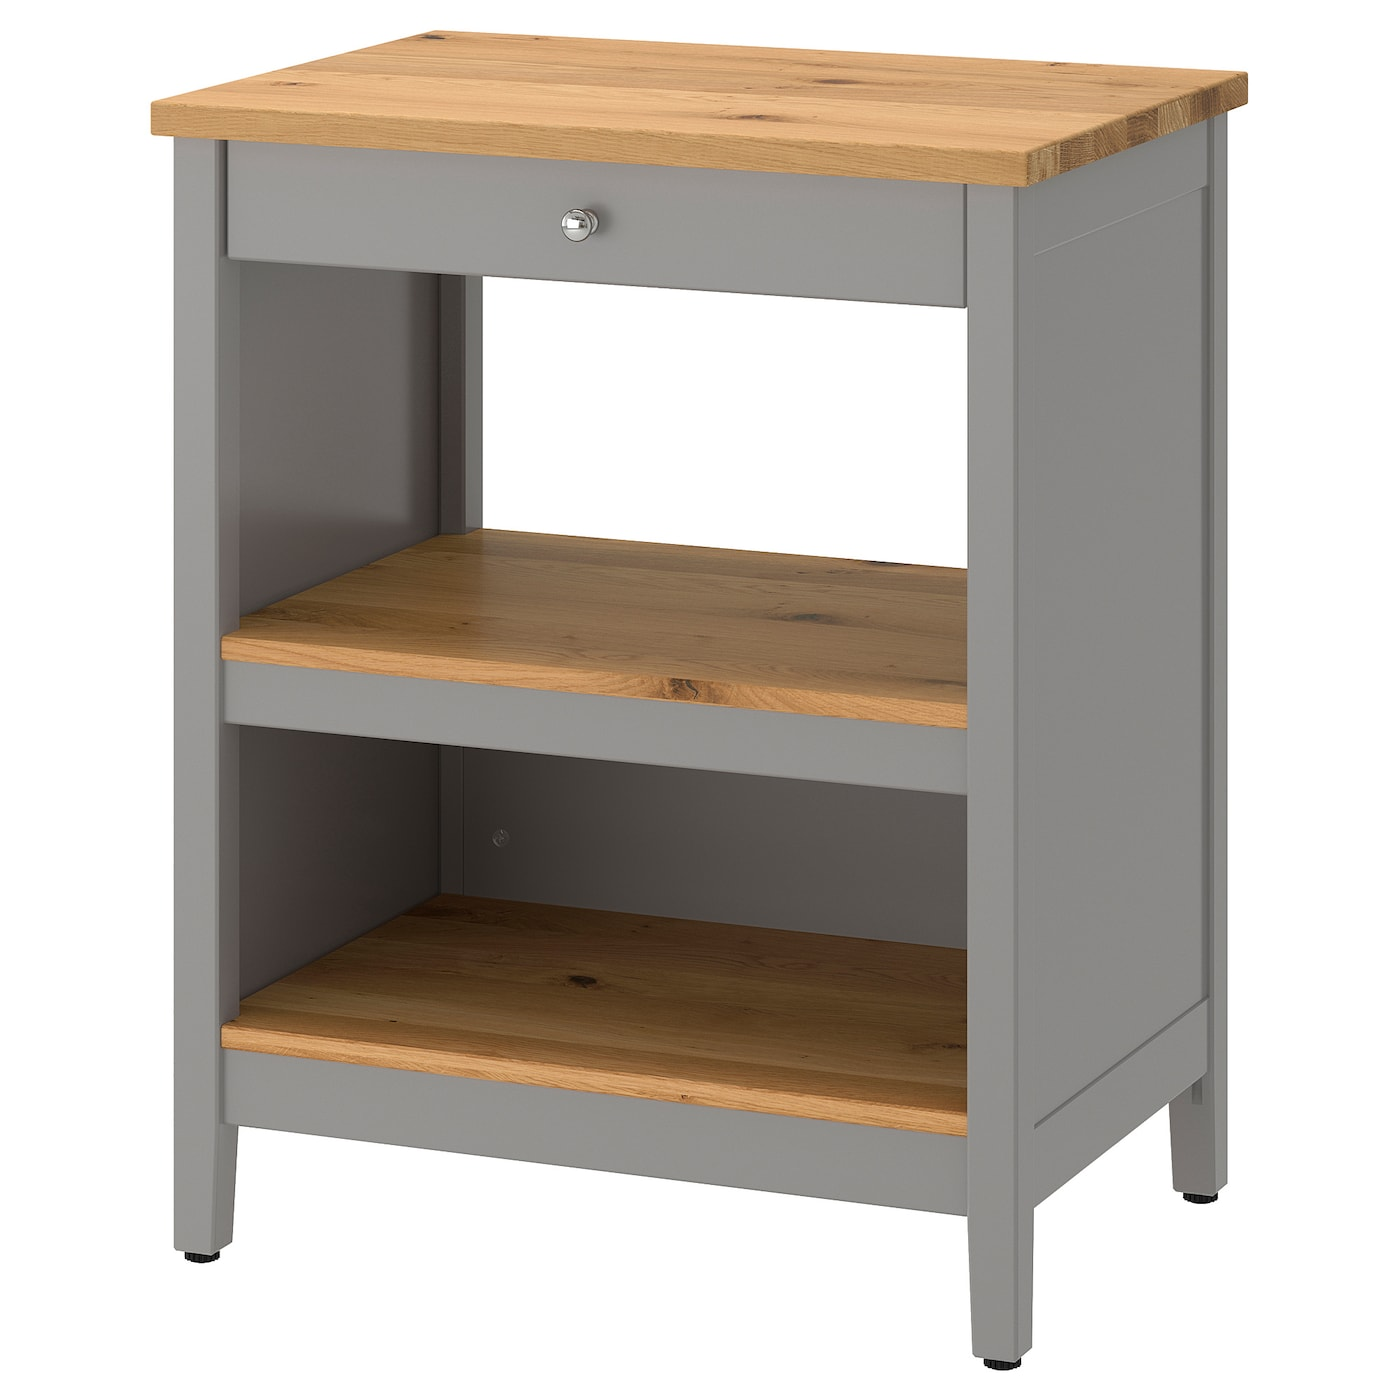 Ikea Tornviken Kitchen Island Gives You Extra Storage Utility And Work E